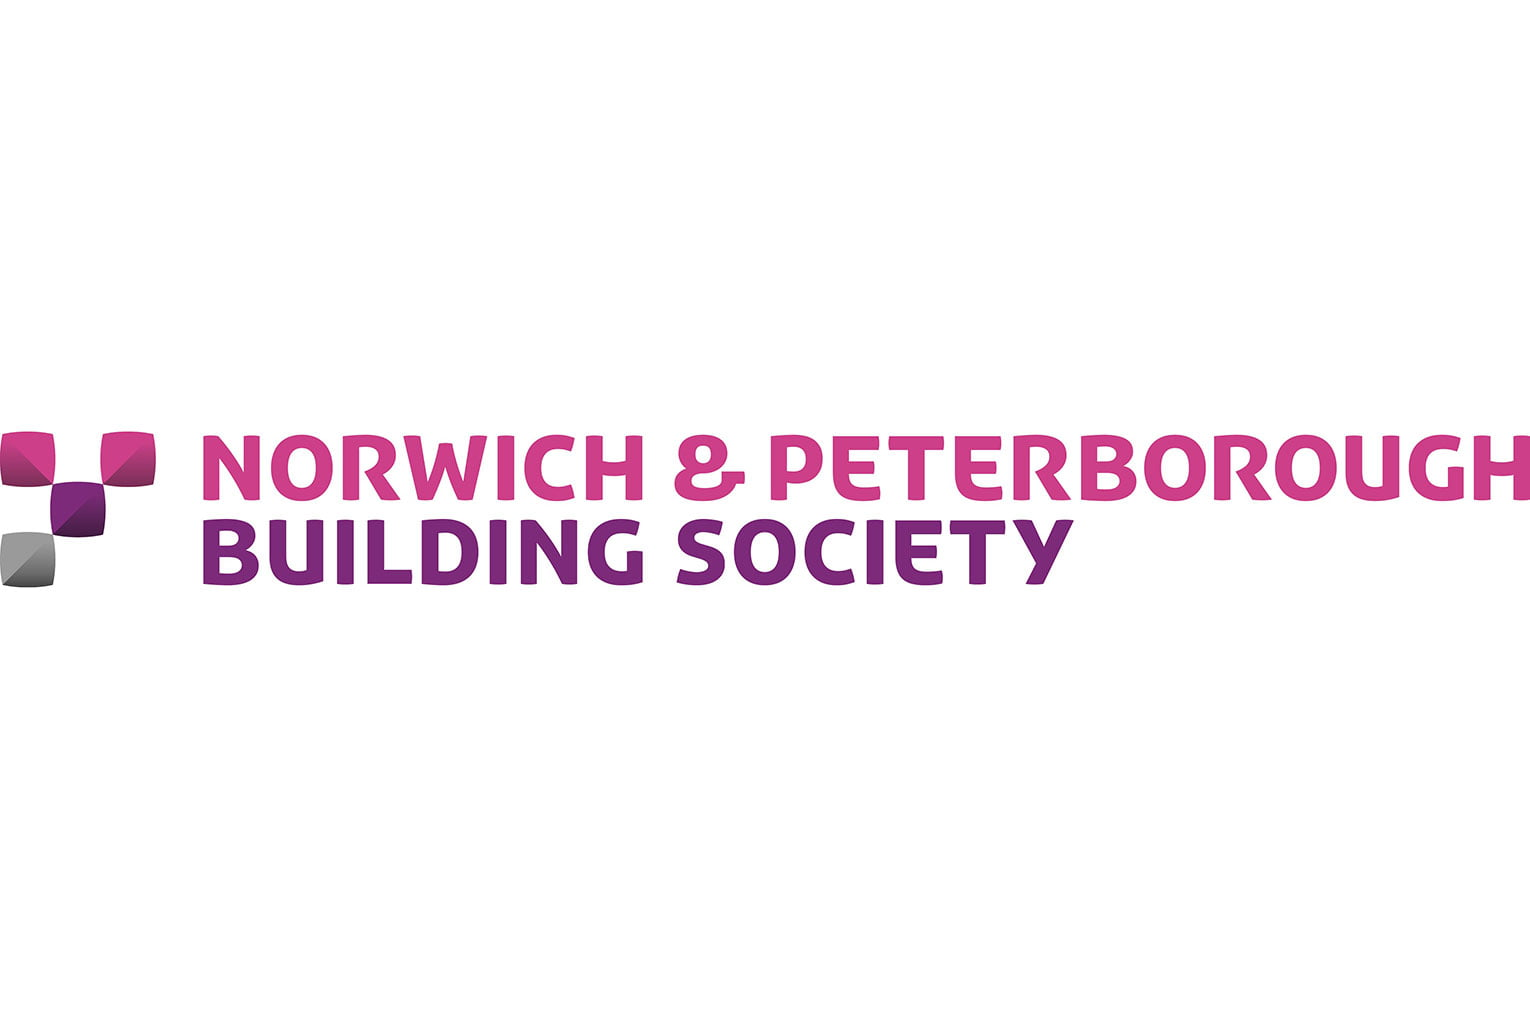 Www Norwich Peterborough Building Society